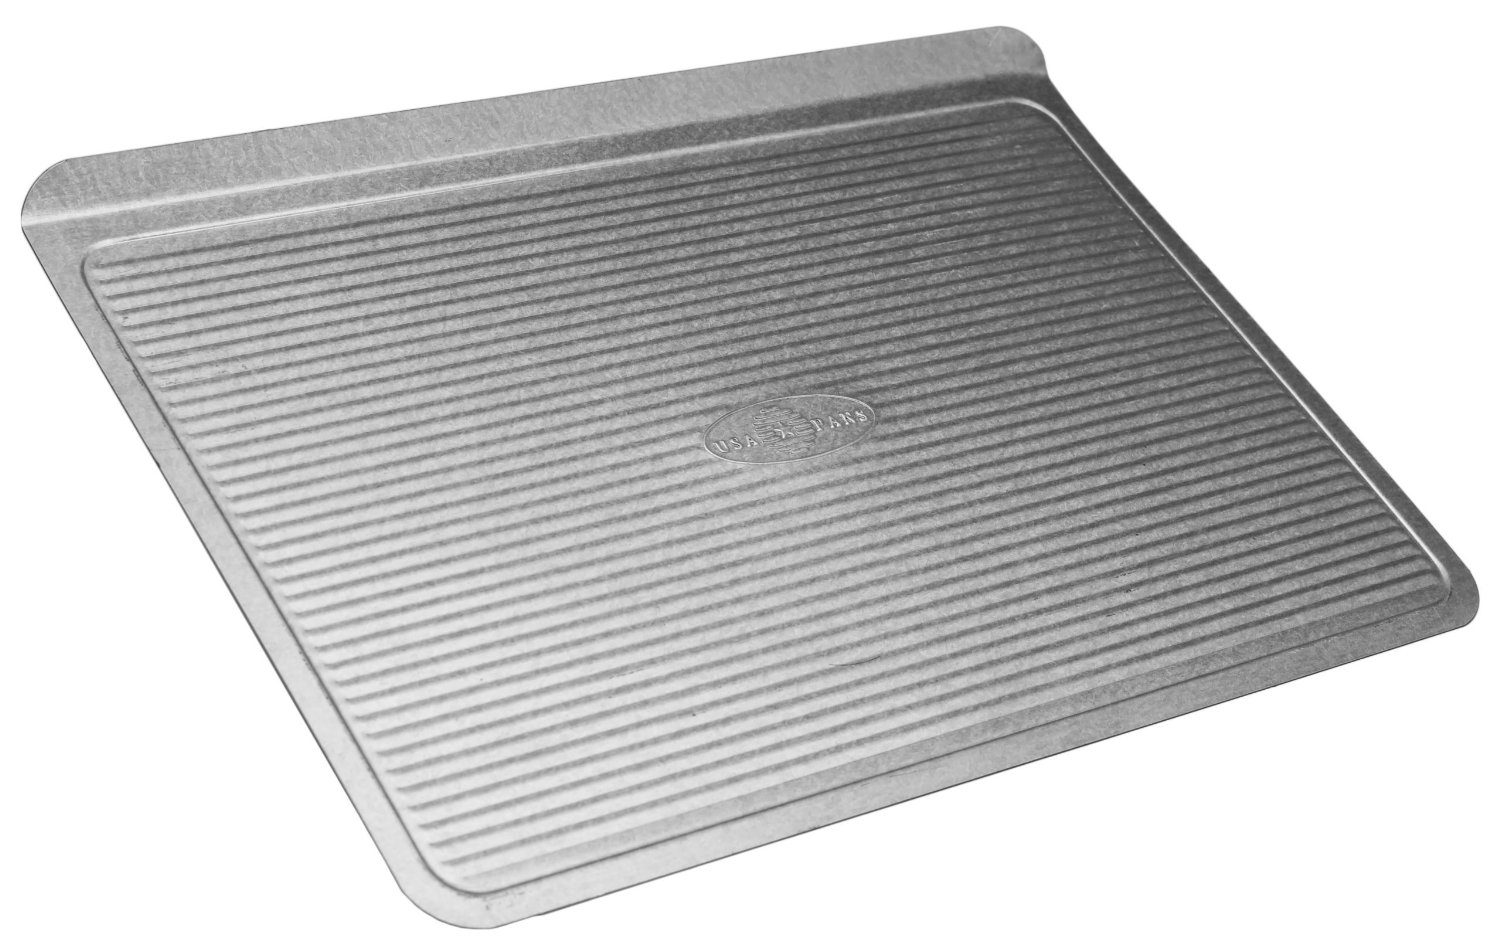 USA Pan Aluminuzed Steel Cookie Sheet, 10 x 14 Inch